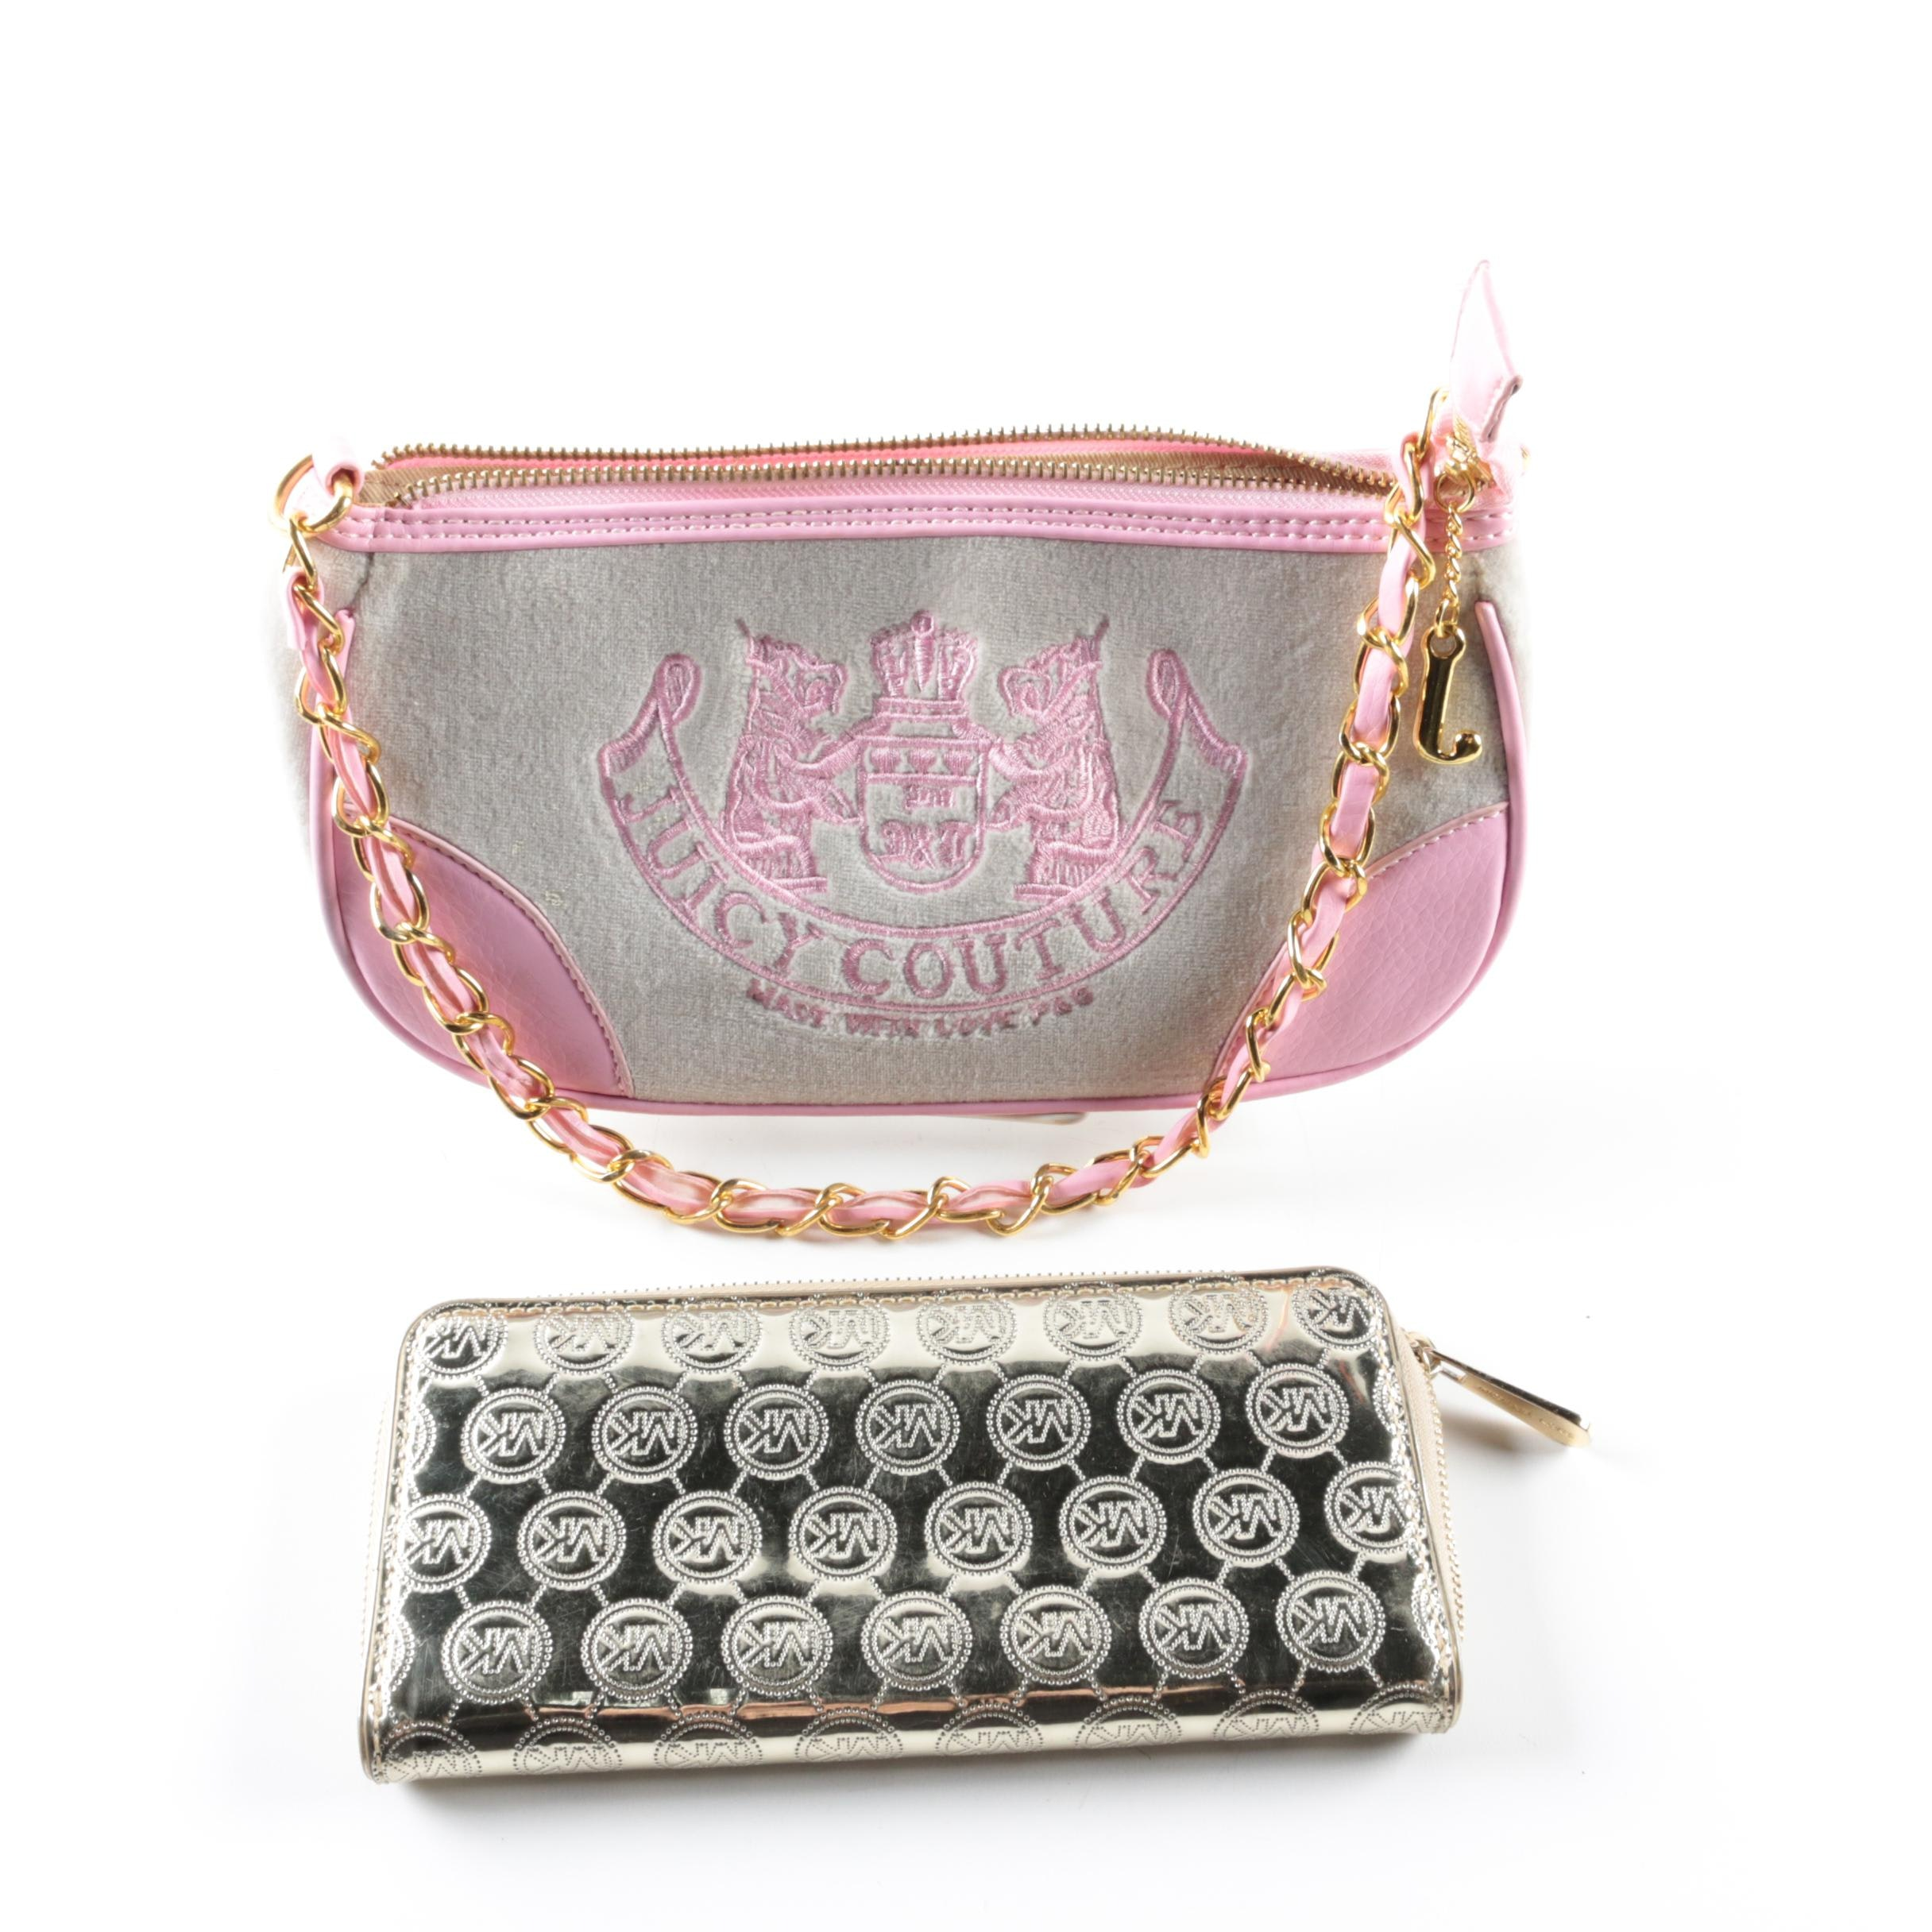 Michael Kors Wallet and Juicy Couture Handbag